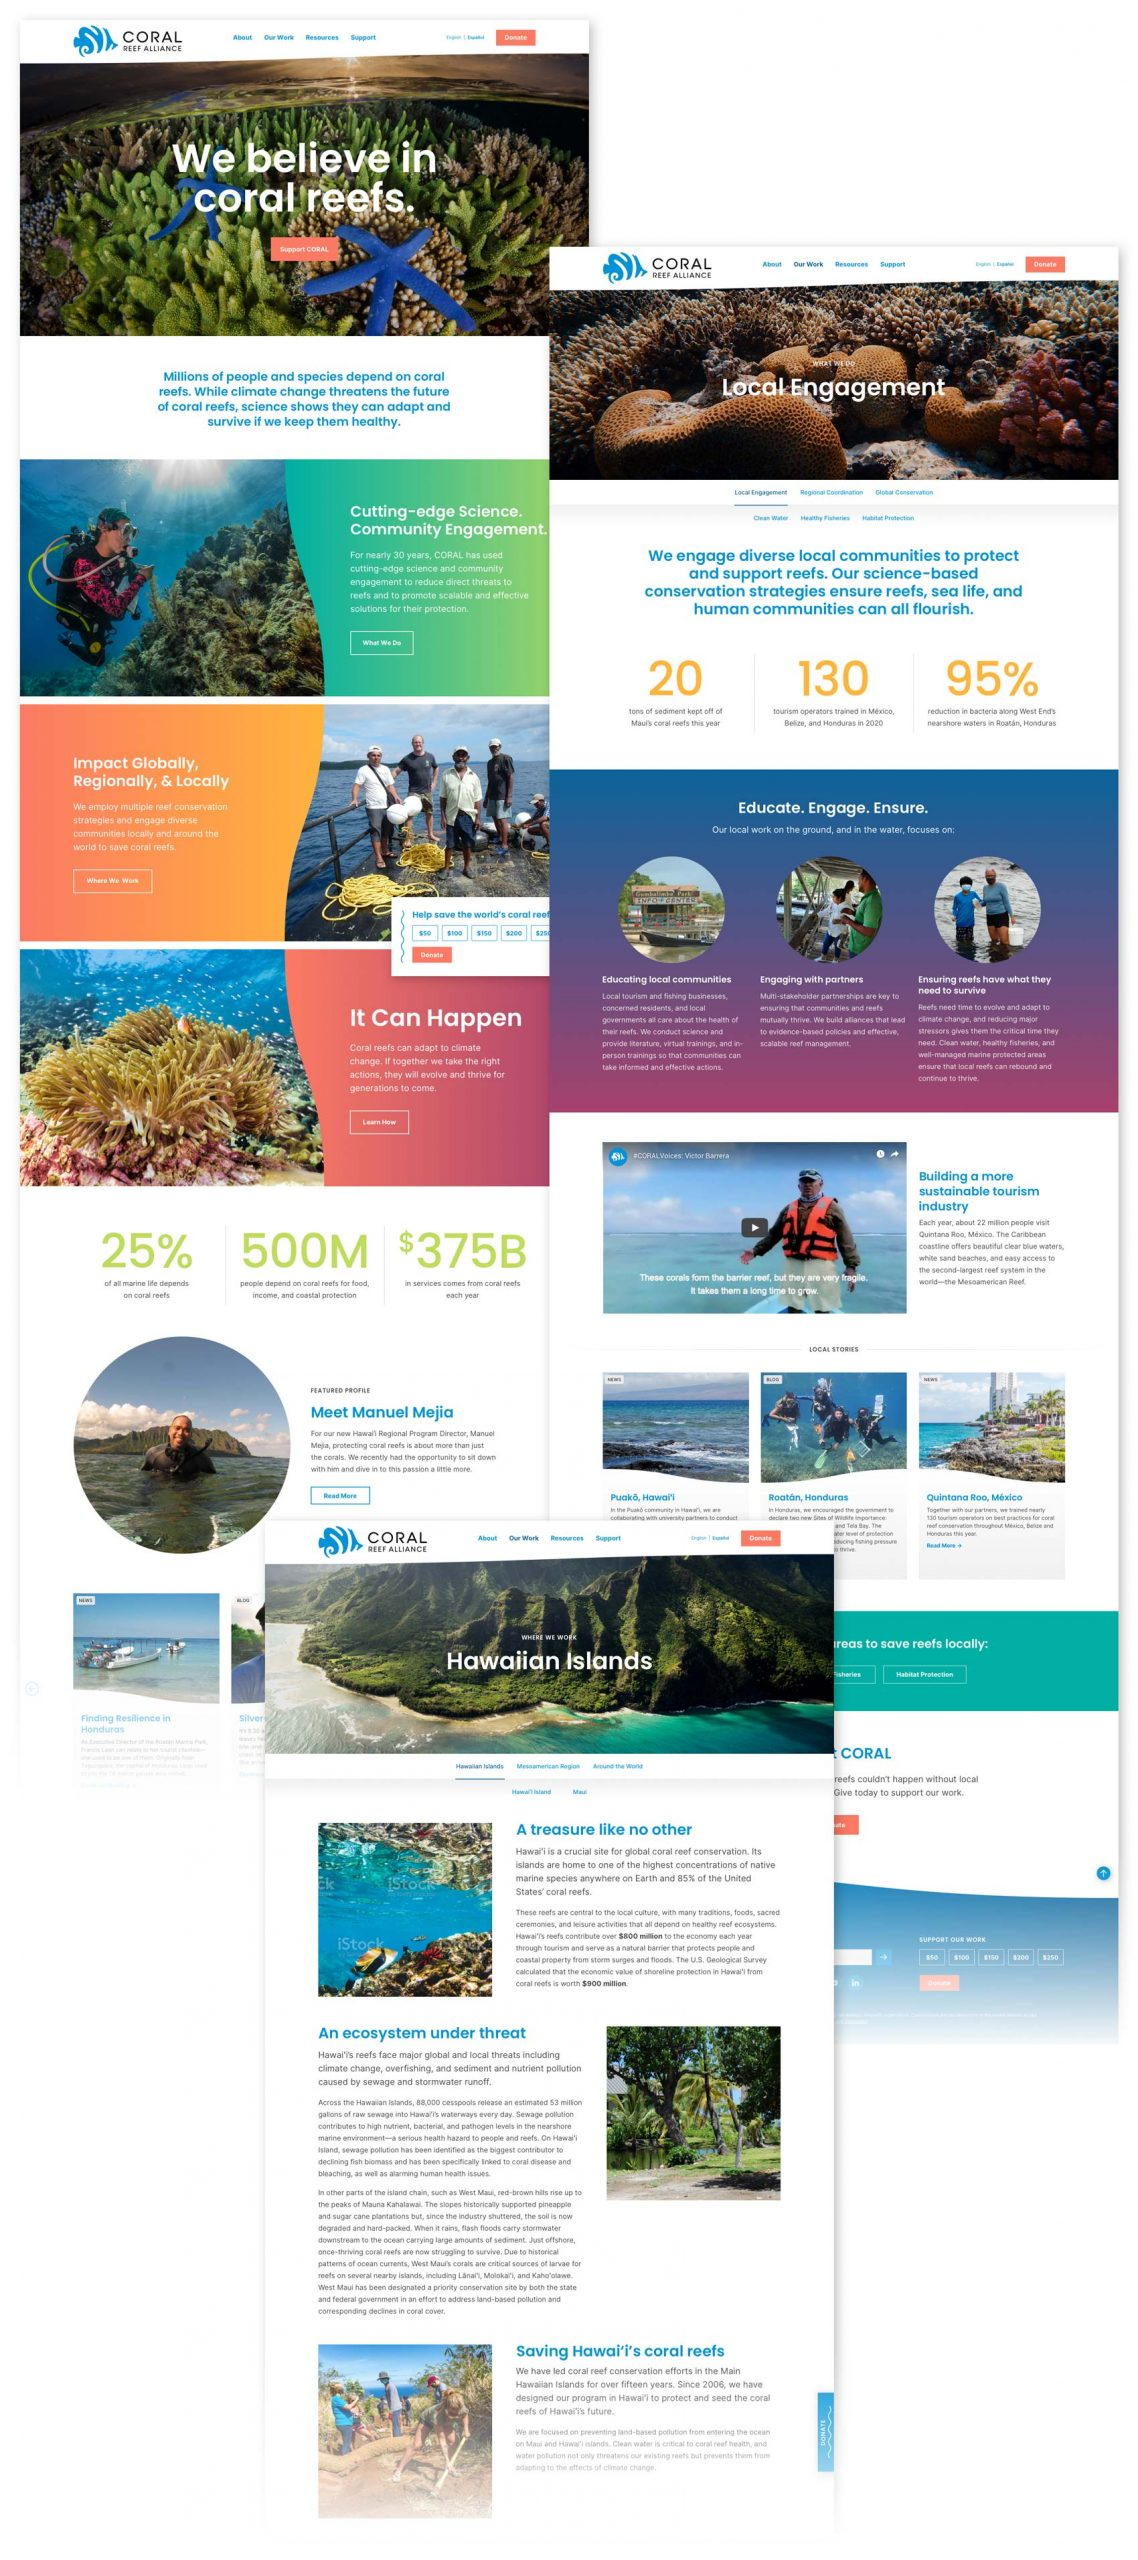 Coral Reef Alliance Website Pages